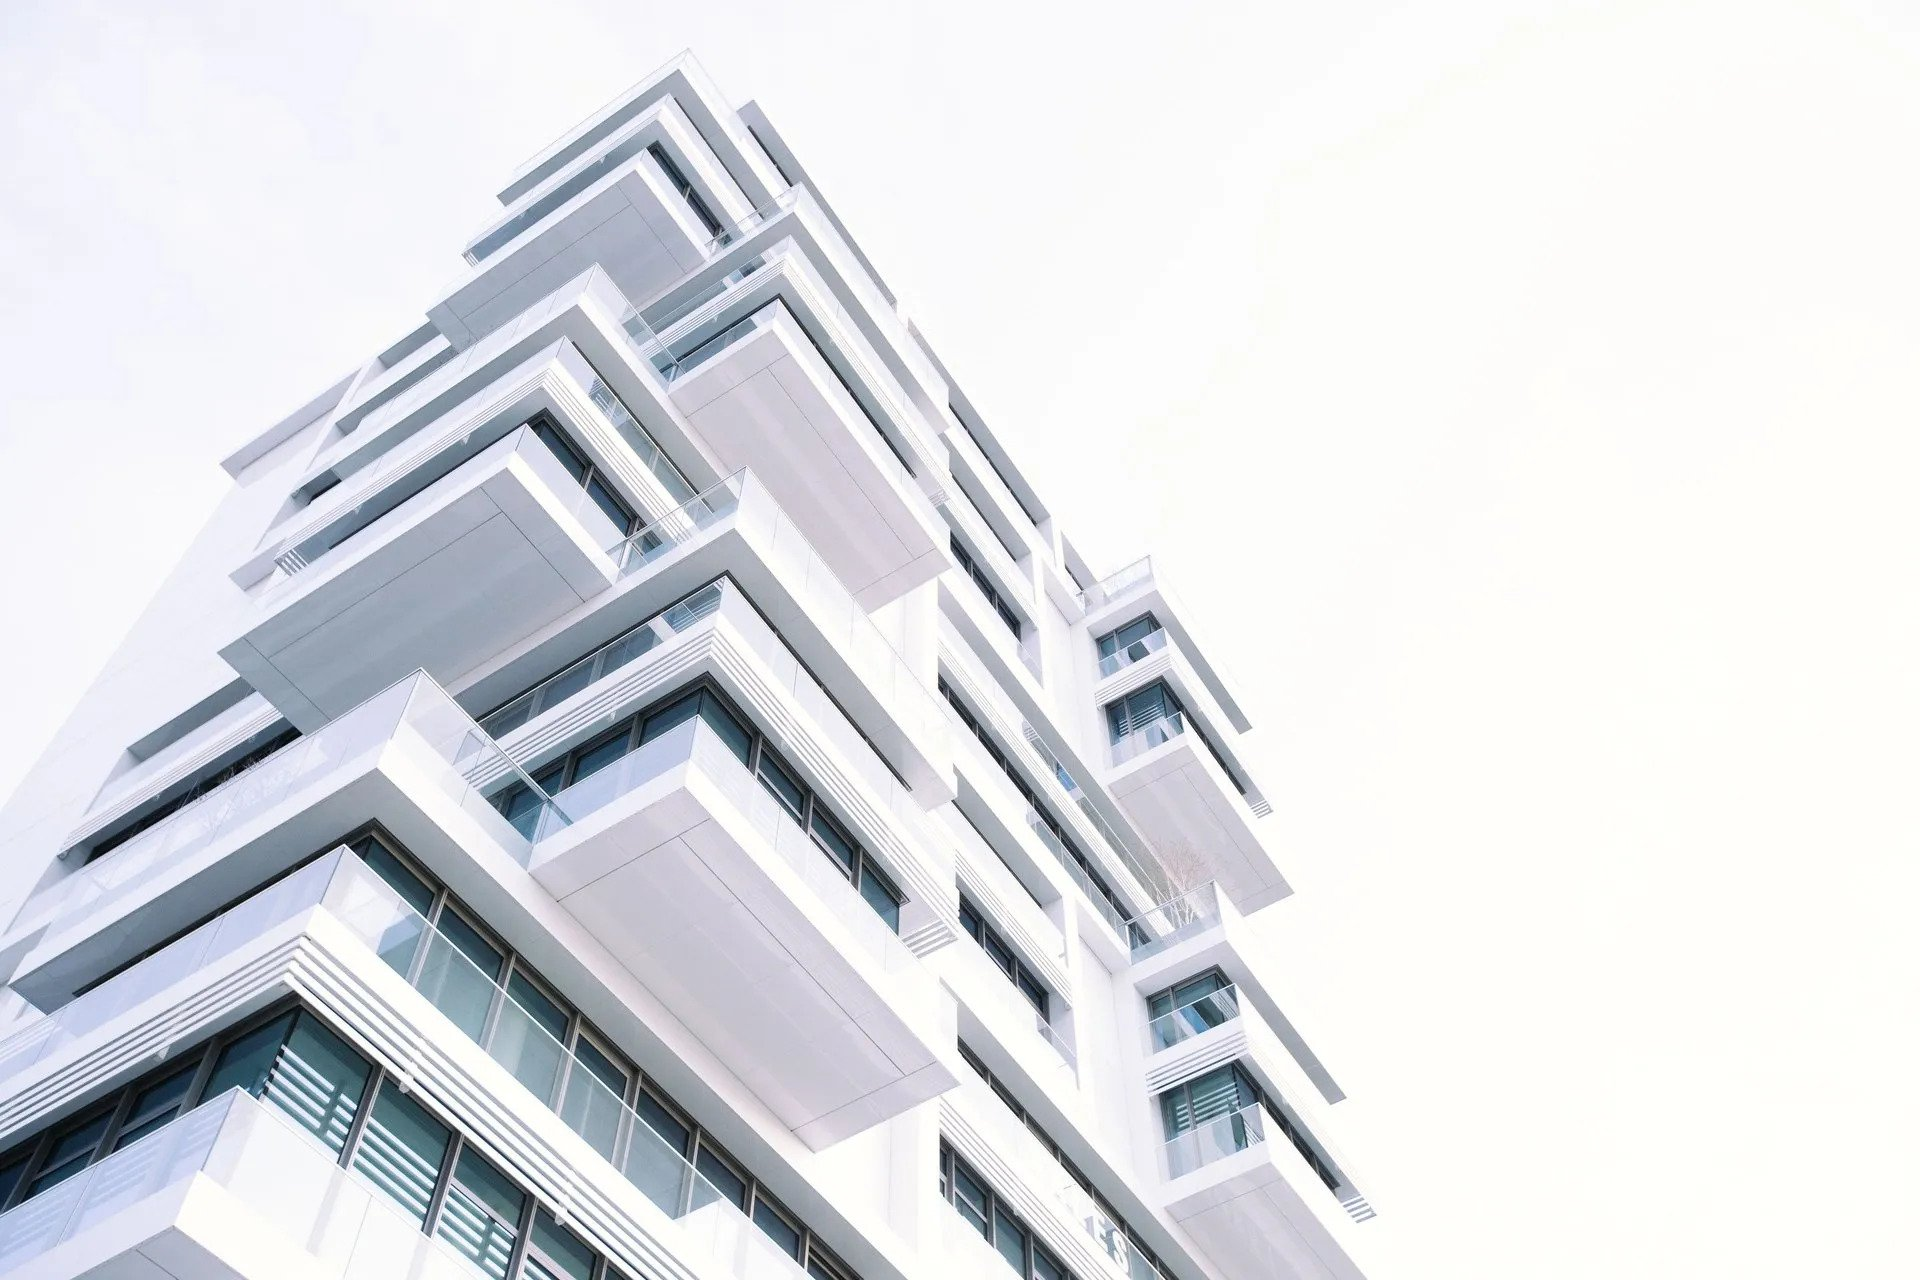 High rise building with multiple apartment rental units